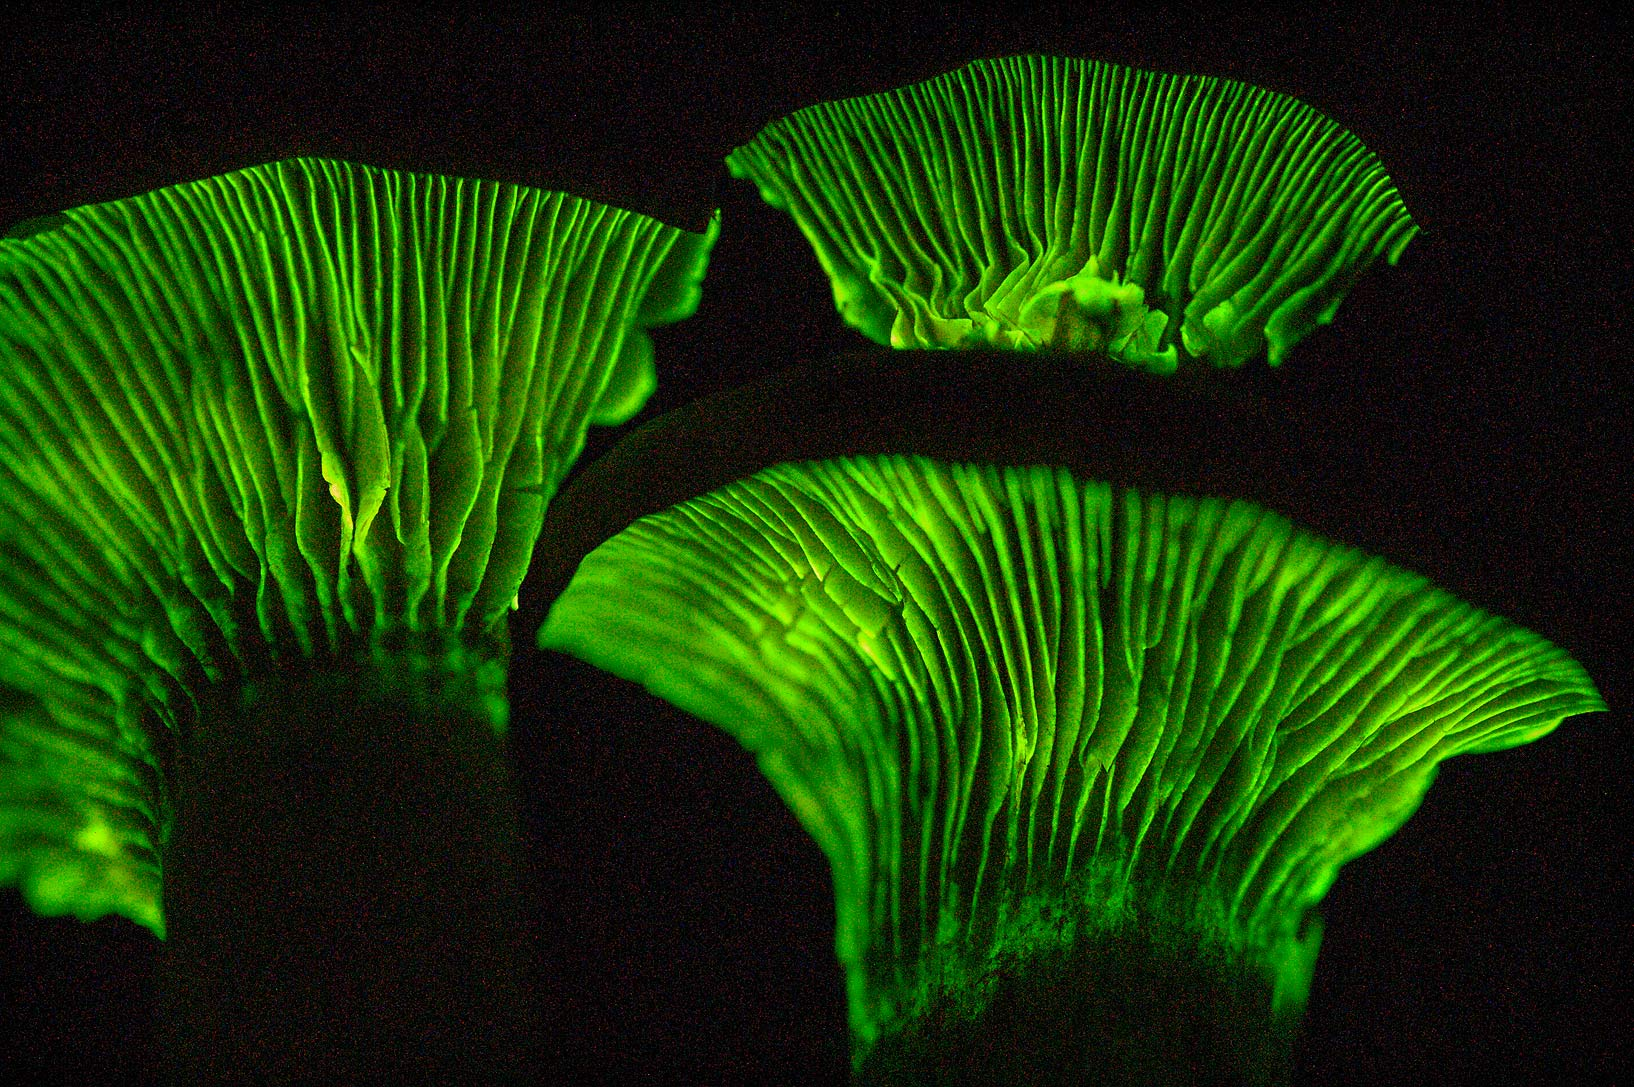 Luminescent gills of Jack-o-lantern (Omphalotus...Lemontree Park. College Station, Texas